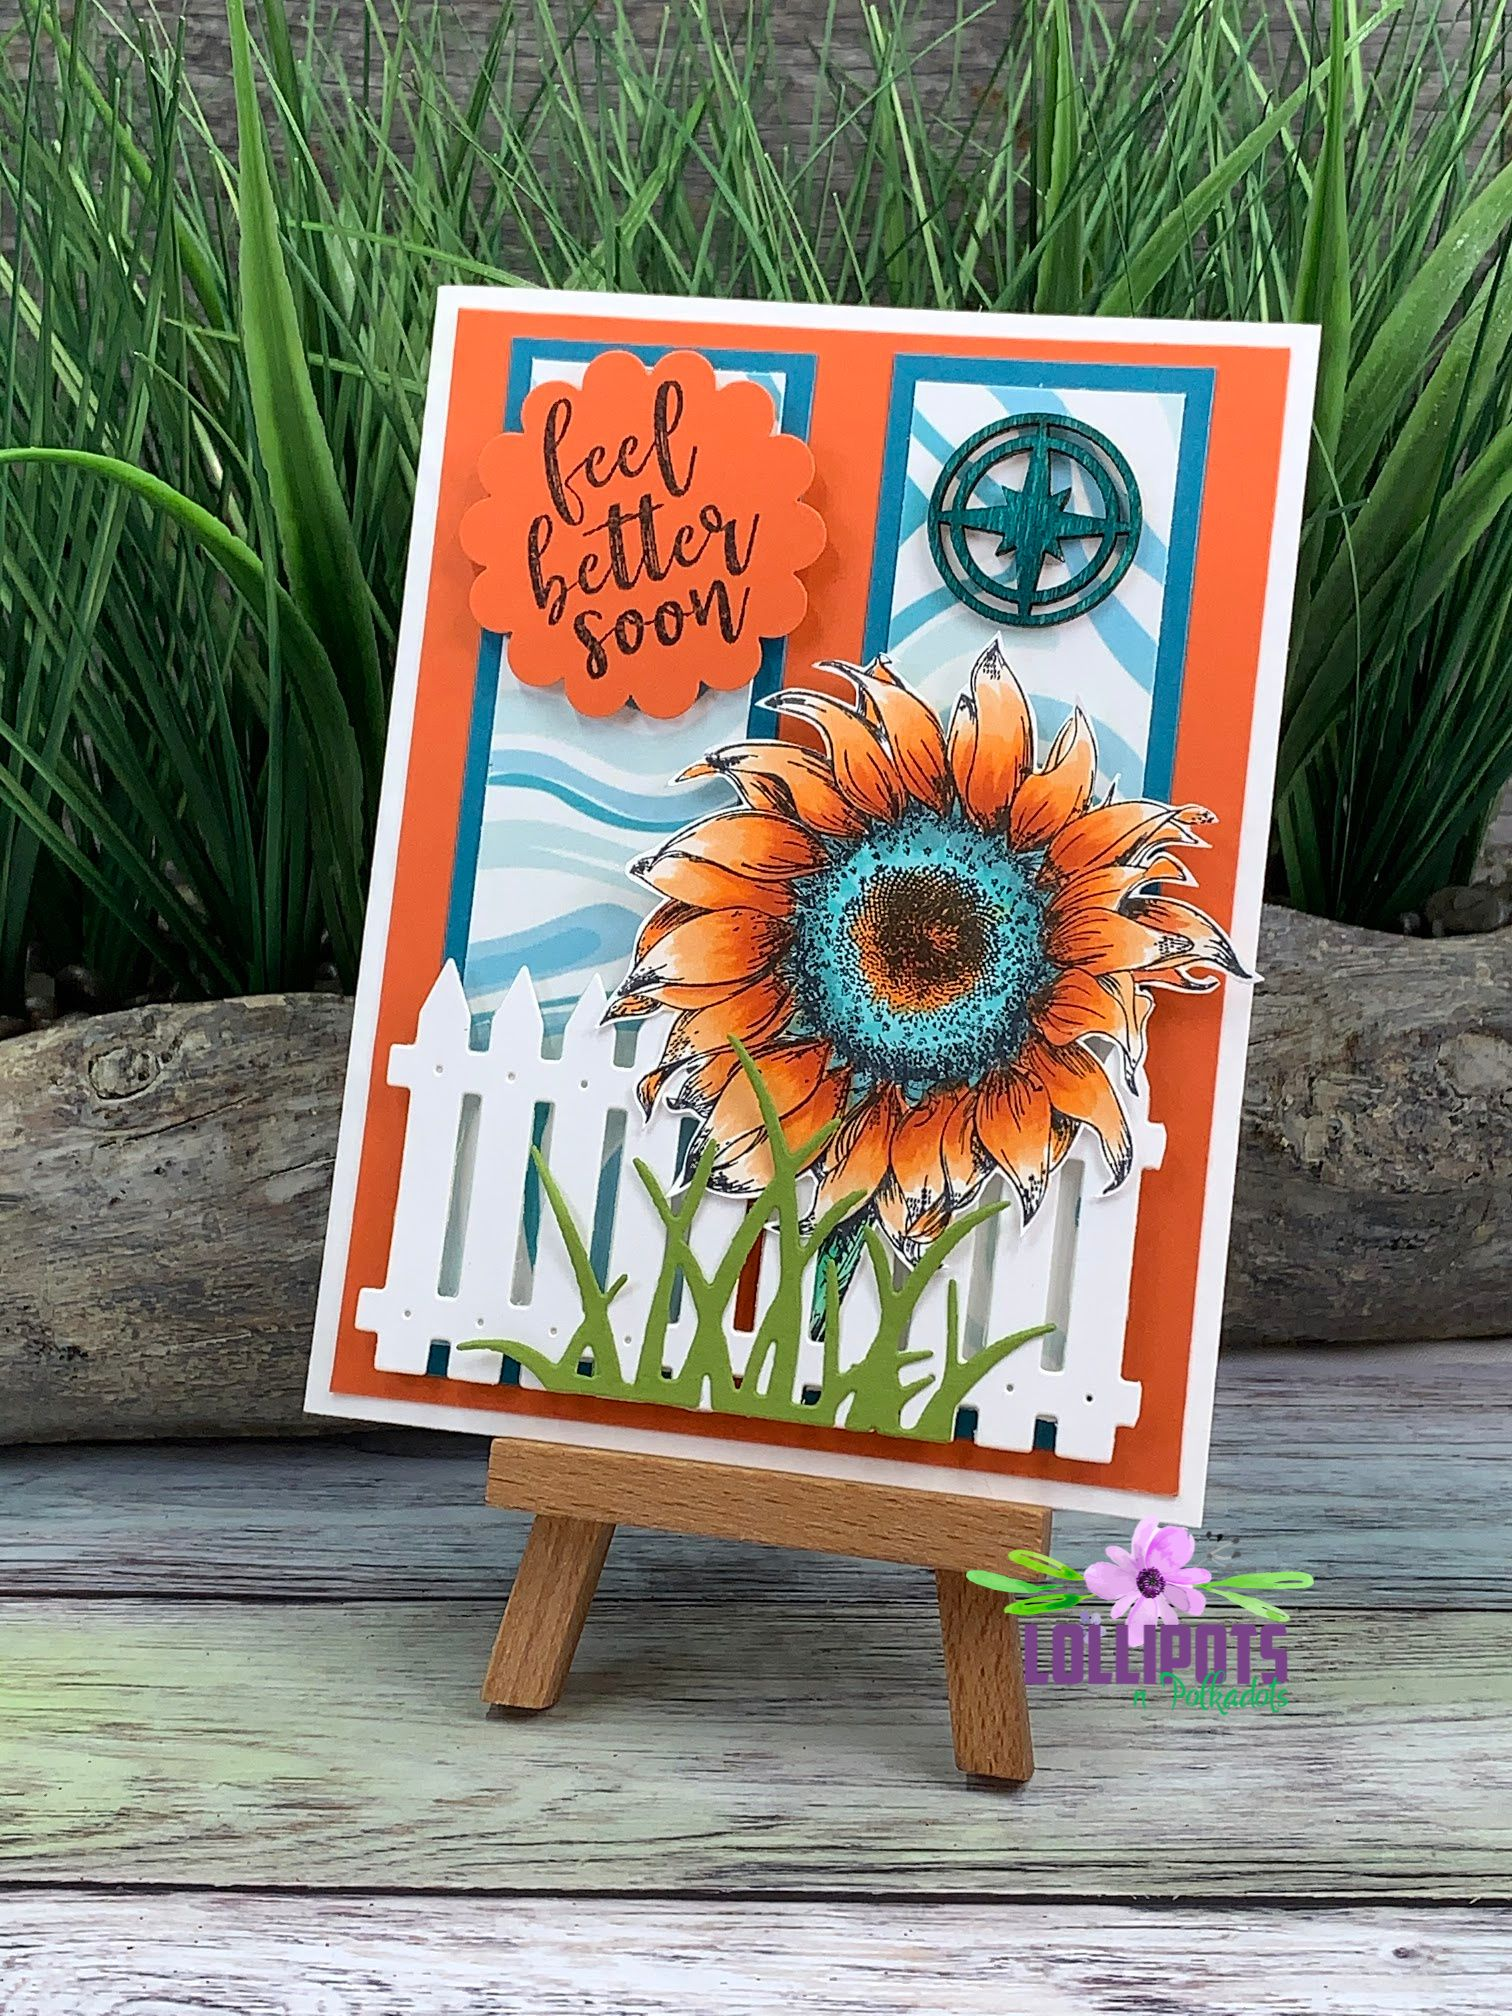 Hey Y'all!!!  Aren't sunflowers just beautiful!  Especially this sunflower with it's beautiful shades of orange and blue.  I colored this sunflower for the 'Coloring Challenge Road Trip' with @kathyrac.  Trying to get out of my comfort zone with colors and #befearless.  All the details are on my blog…. ~Teresa  @teresacplunkett #whimsystamps #fsjourney #scrapbookpal #getwellsoon #feelbettersoon #sunflowers #kathyrac #happymail #befearless #coloroutsidethelines